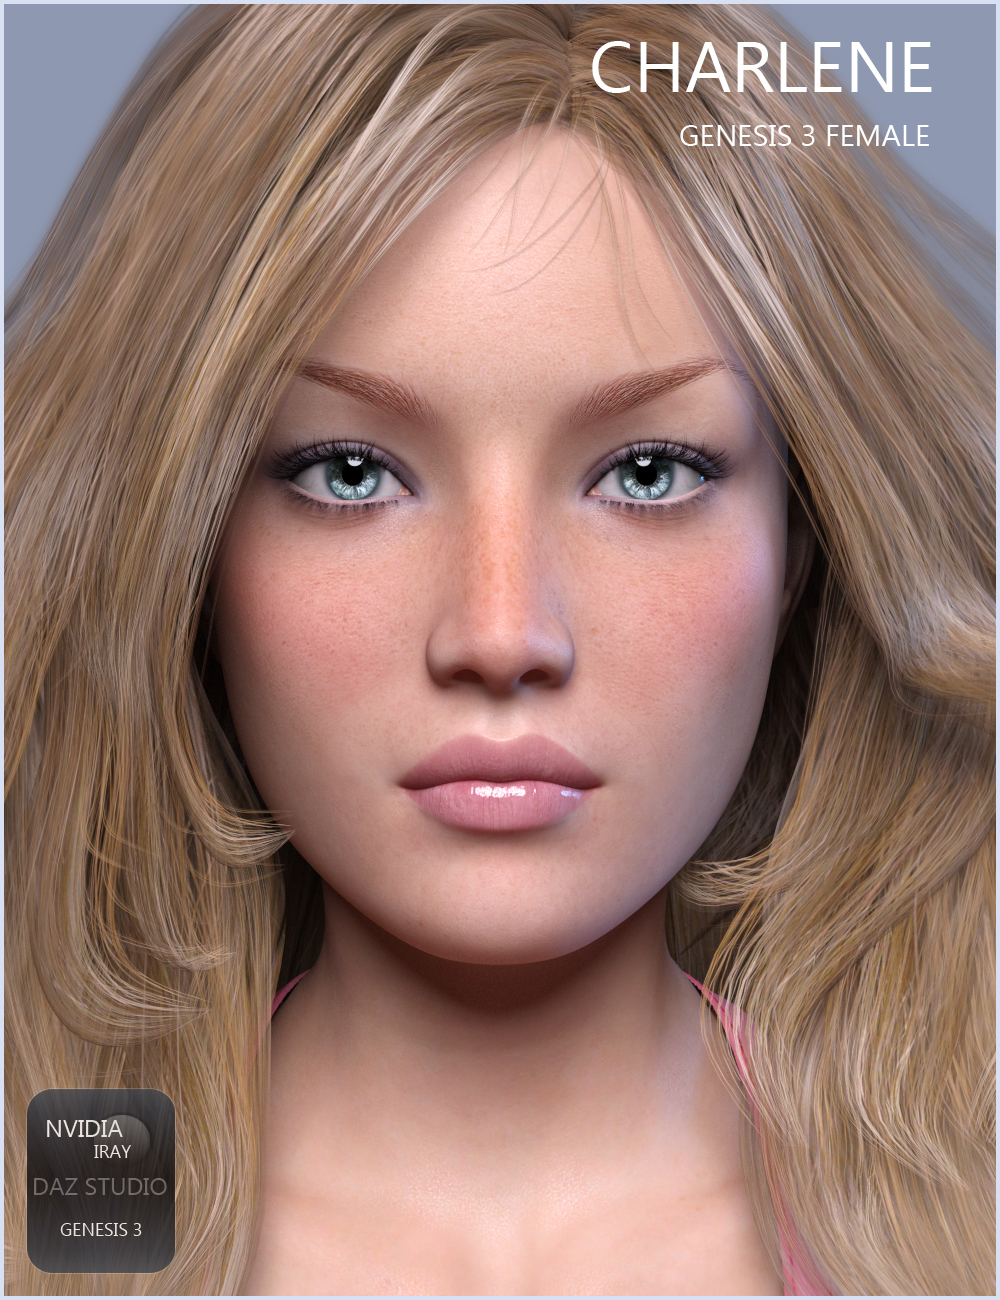 Charlene for G3F coming soon to Renderosity Market by Valery3D